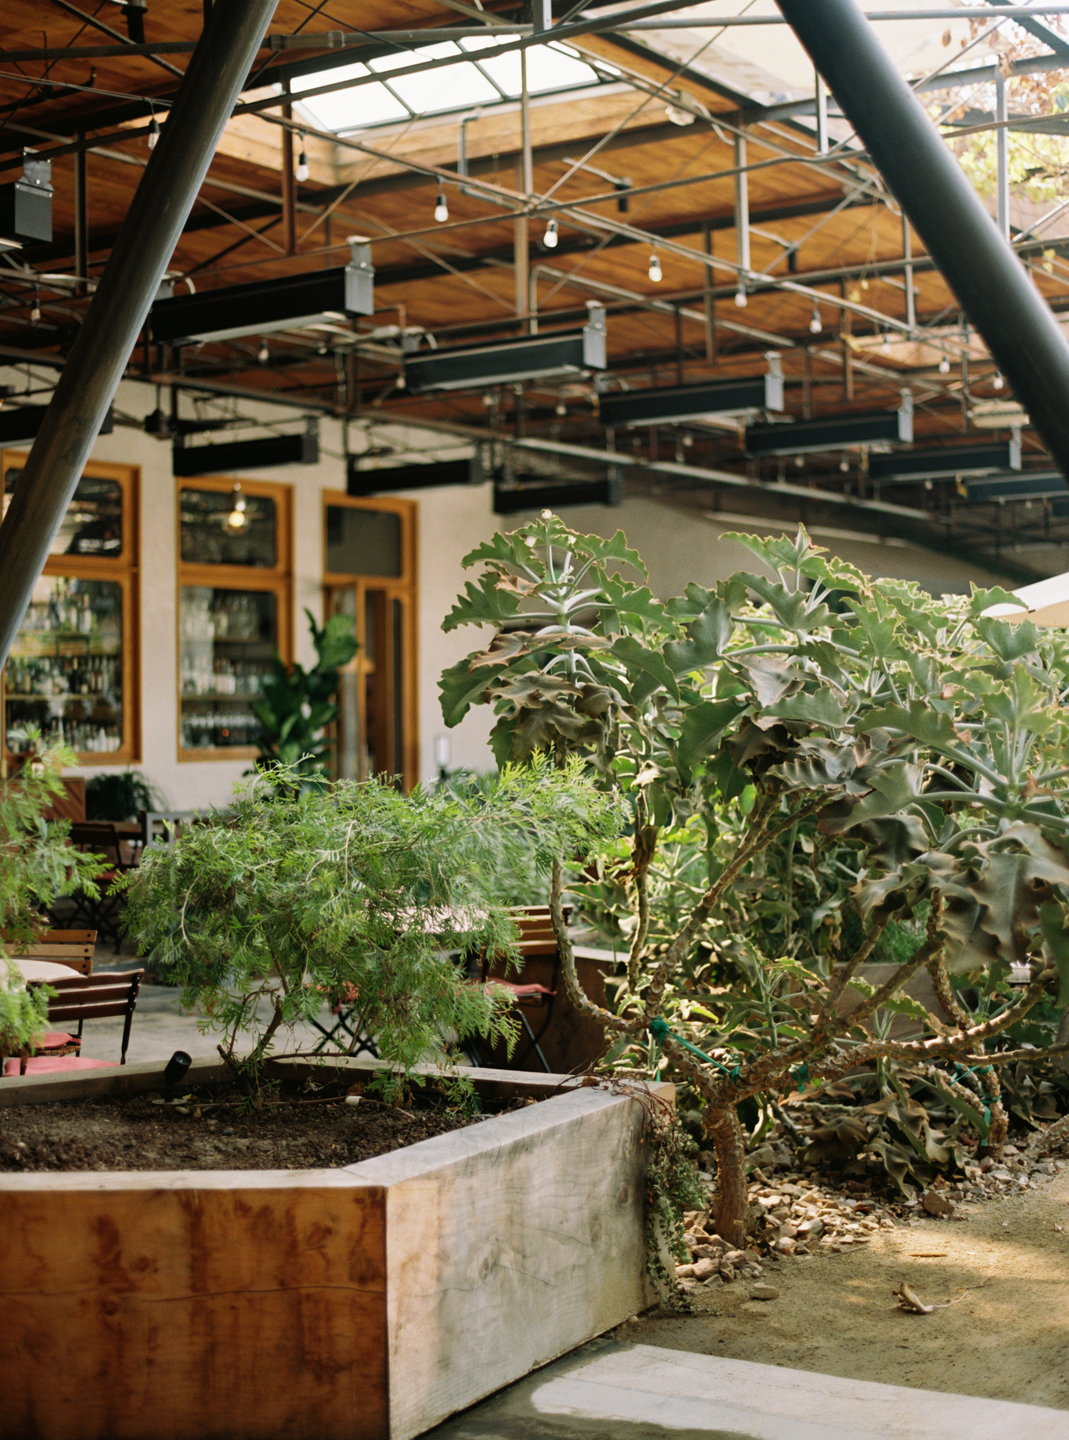 Hauser & Wirth Building Interior with Garden Box and Plants